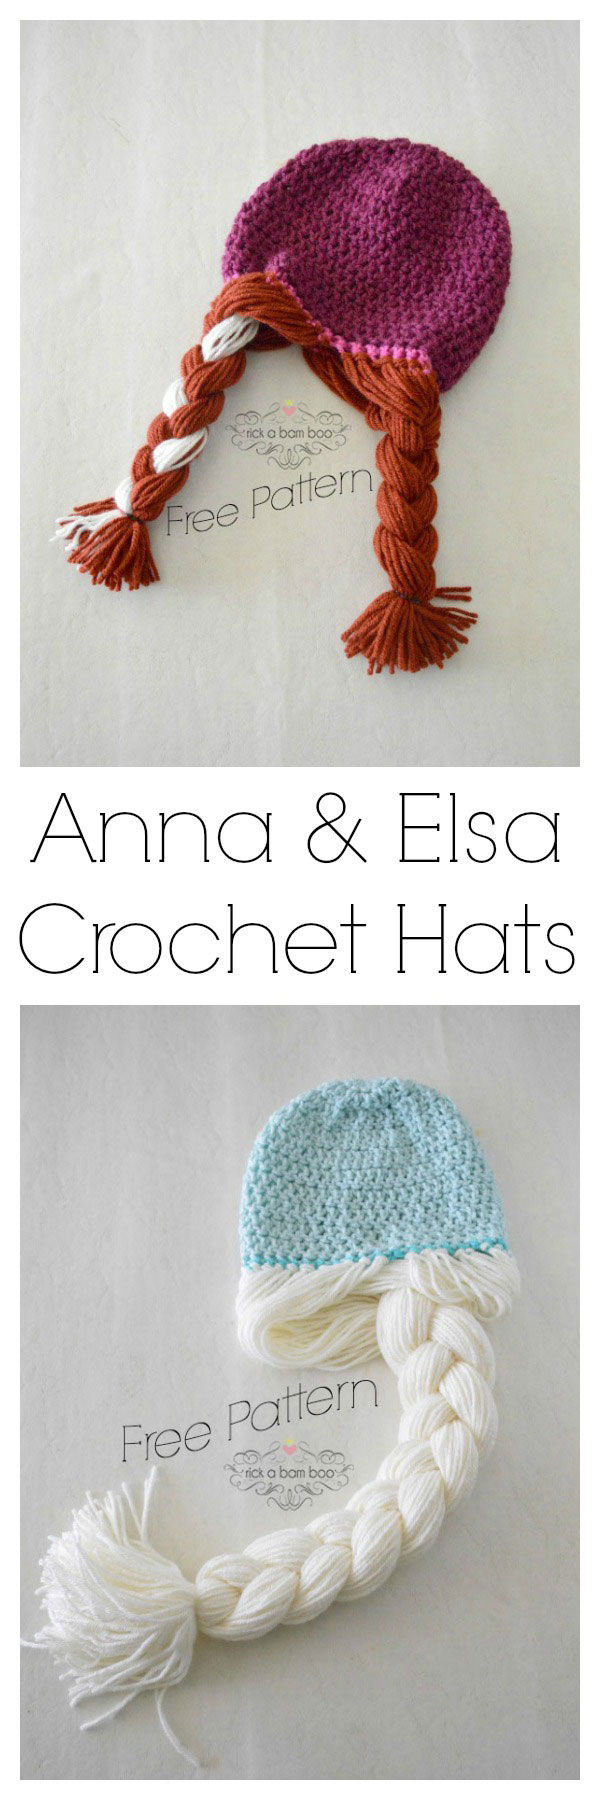 Anna Amp Elsa Crochet Hats Pictures Photos And Images For